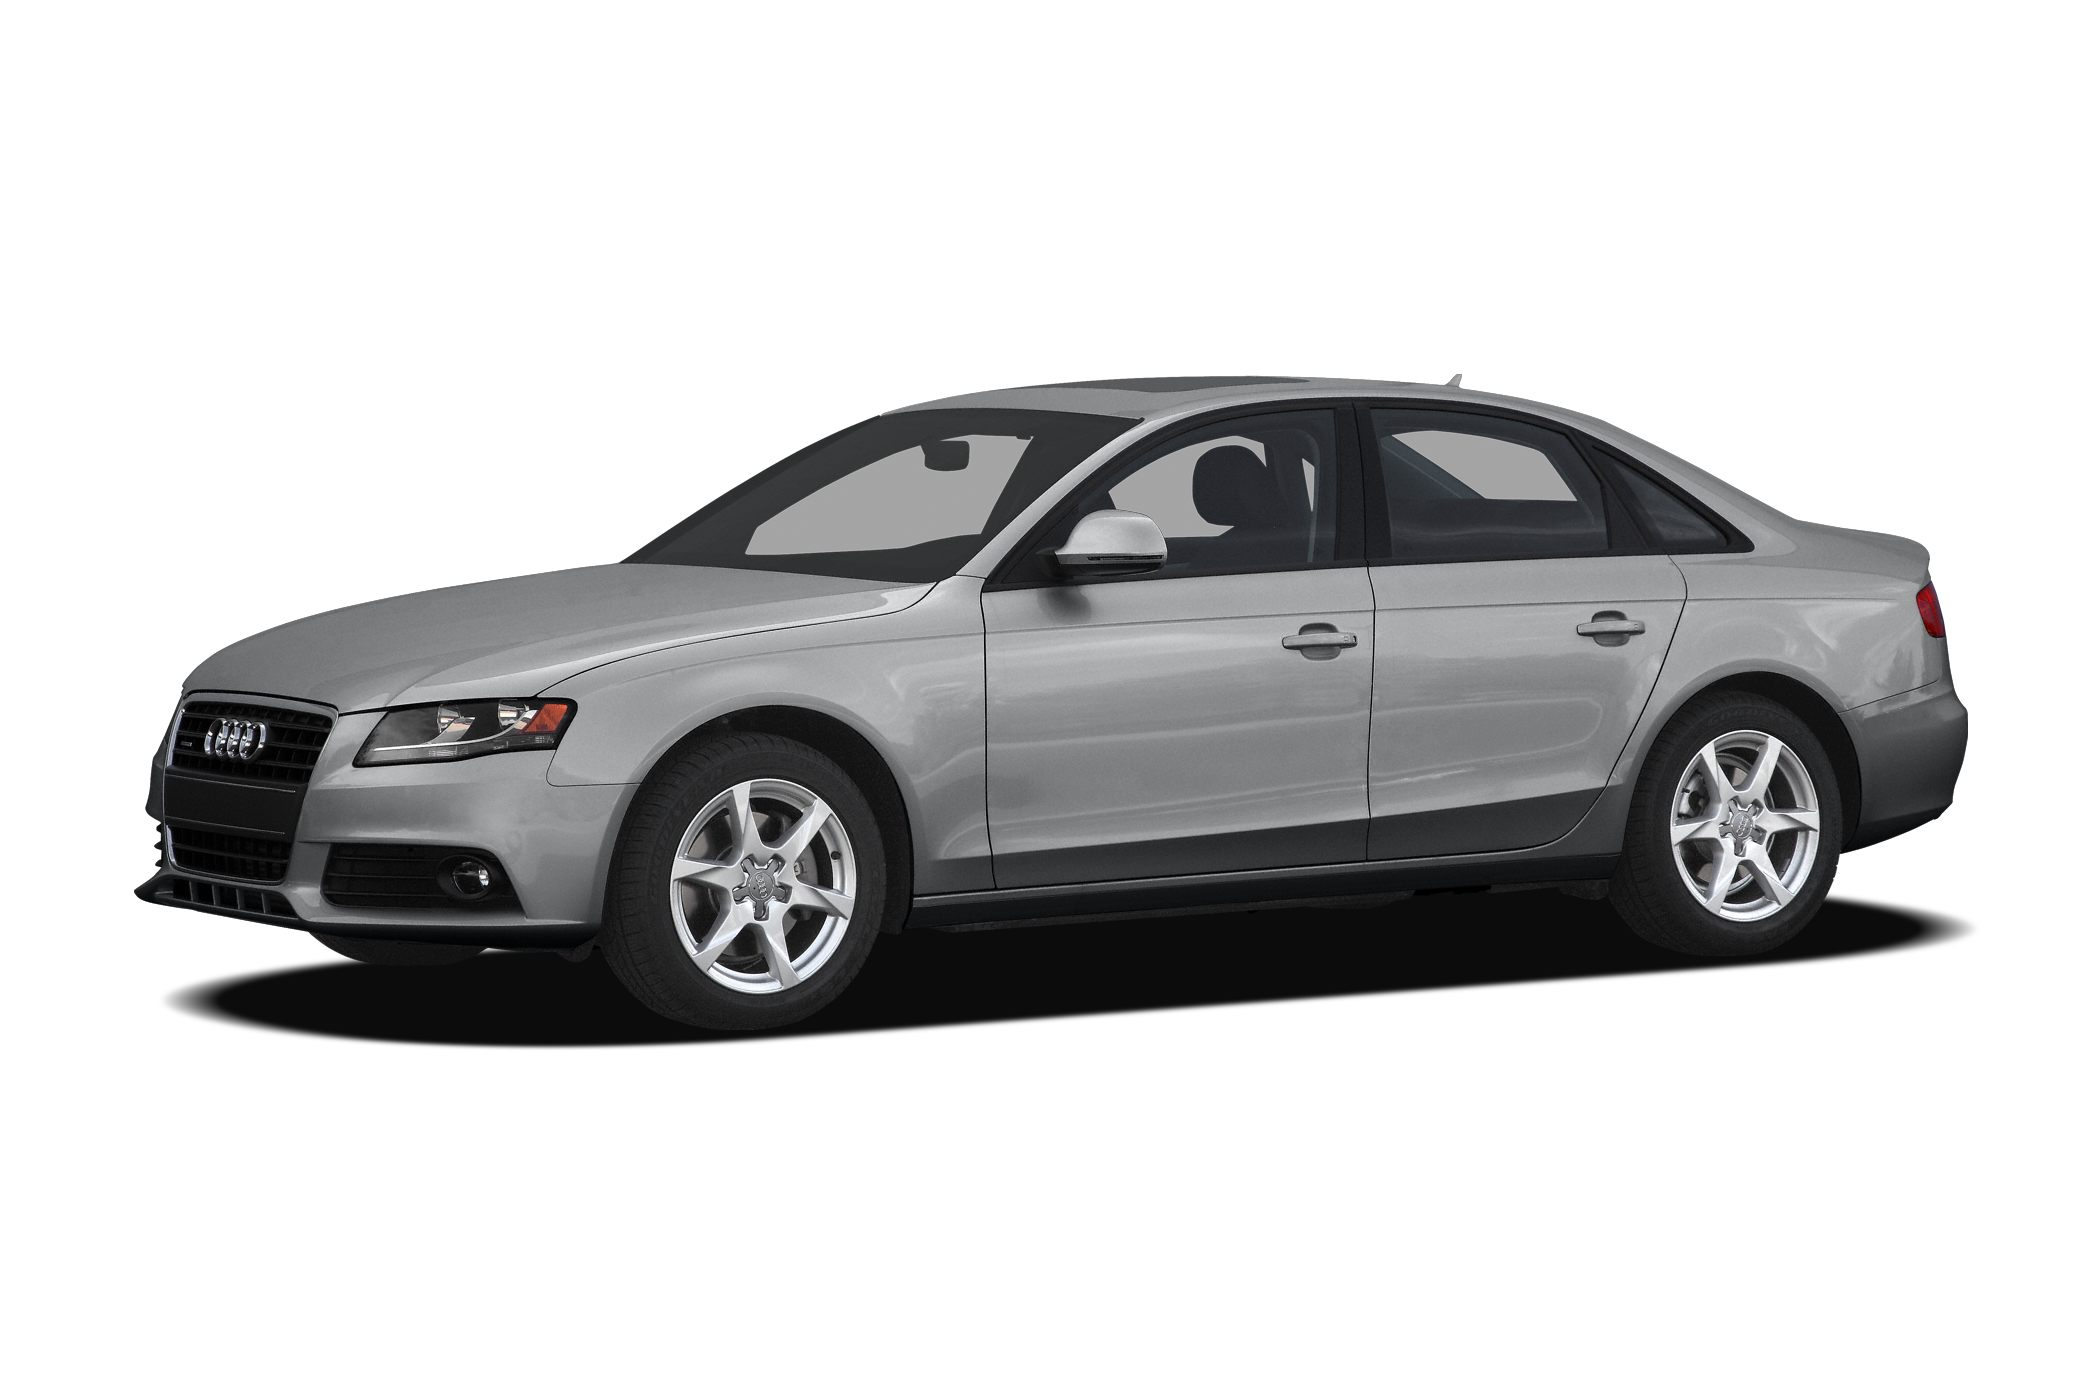 2009 Audi A4 2.0T Premium Sedan for sale in Long Beach for $17,500 with 64,172 miles.